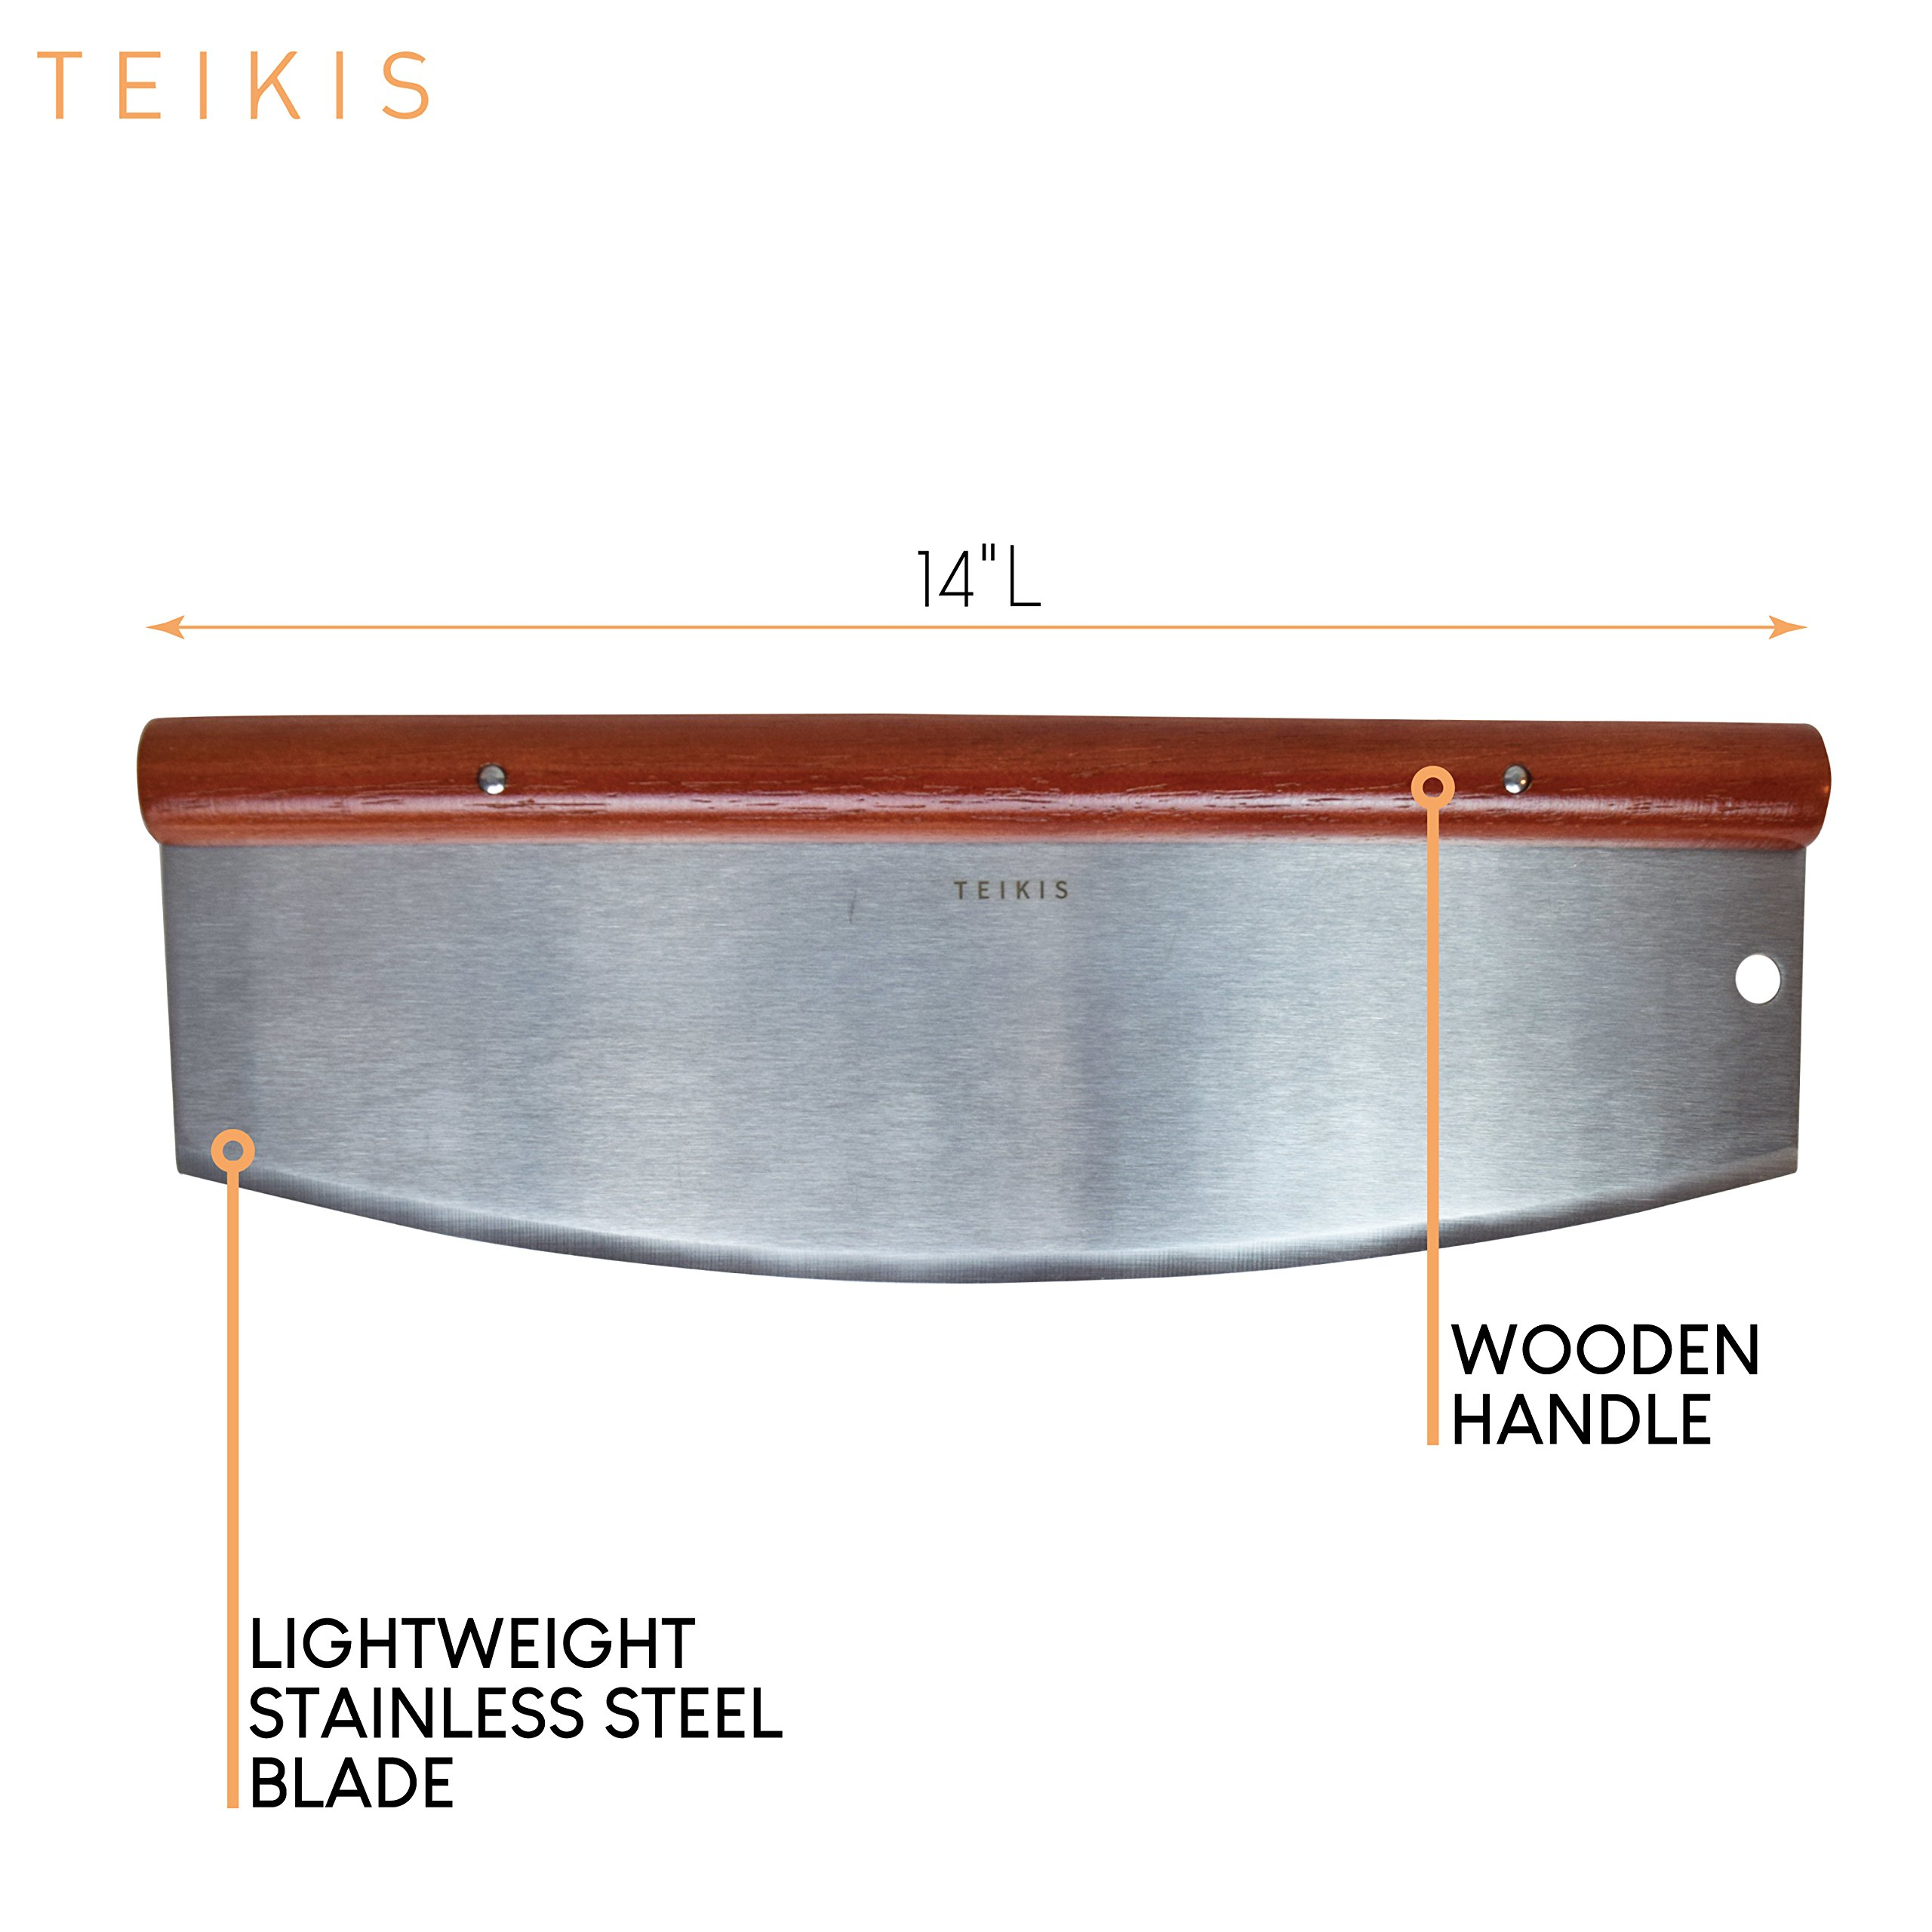 TeiKis Large 14-inch Pizza Cutter + Pizza Peel Paddle Board Set (14-inch x 16-inch) with Wood Handle by TeiKis (Image #4)